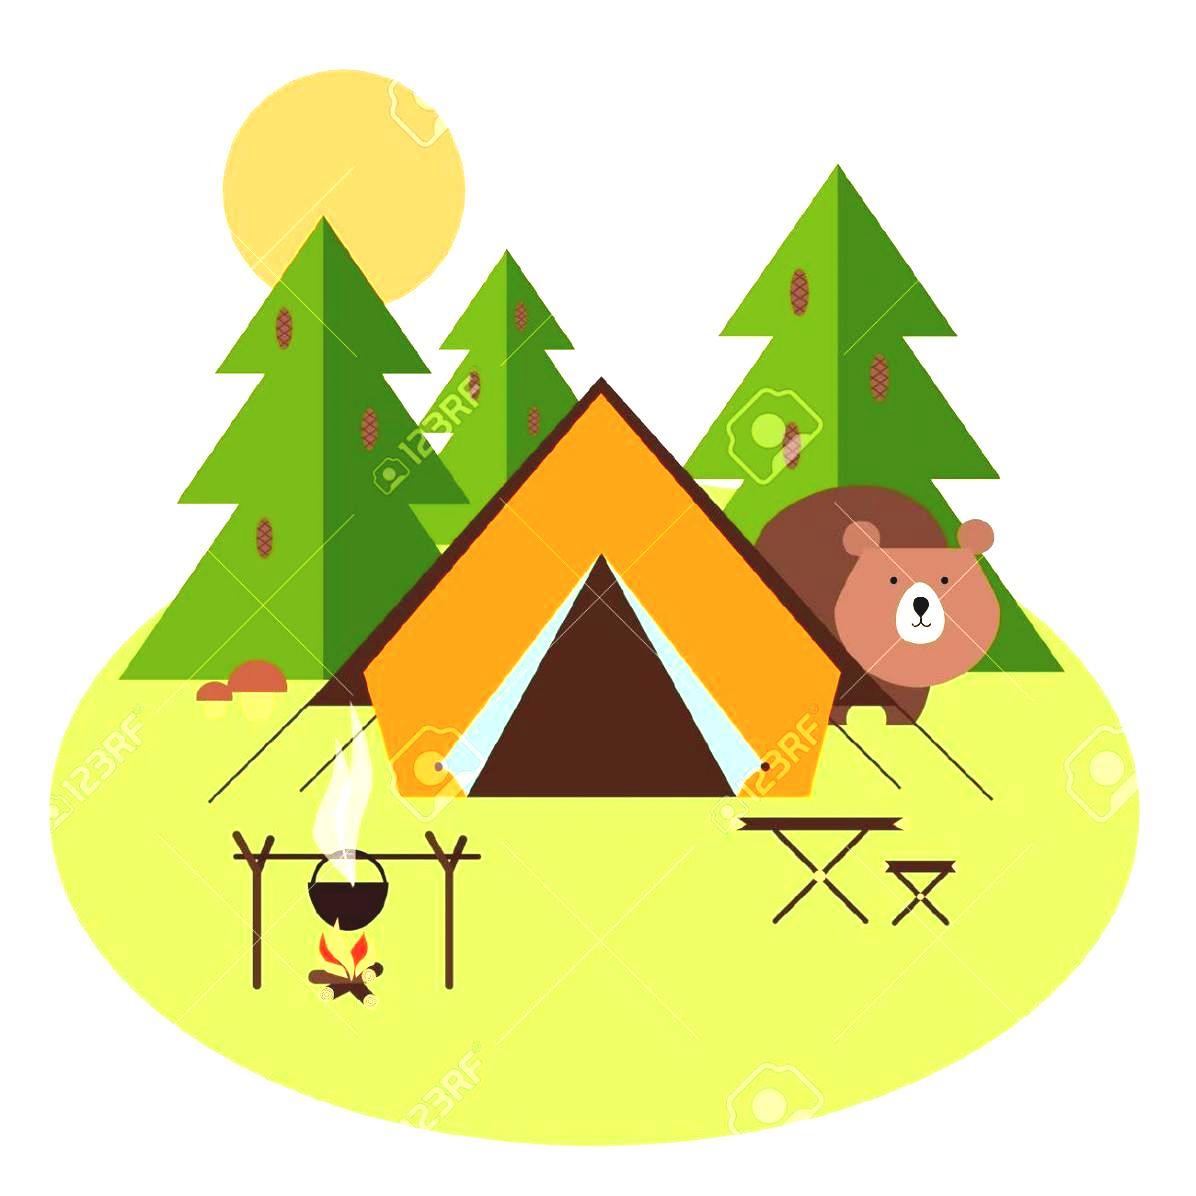 Camping clipart vectors image library stock Camping Clipart Tent Stock Vector Illustration And Royalty - Free ... image library stock